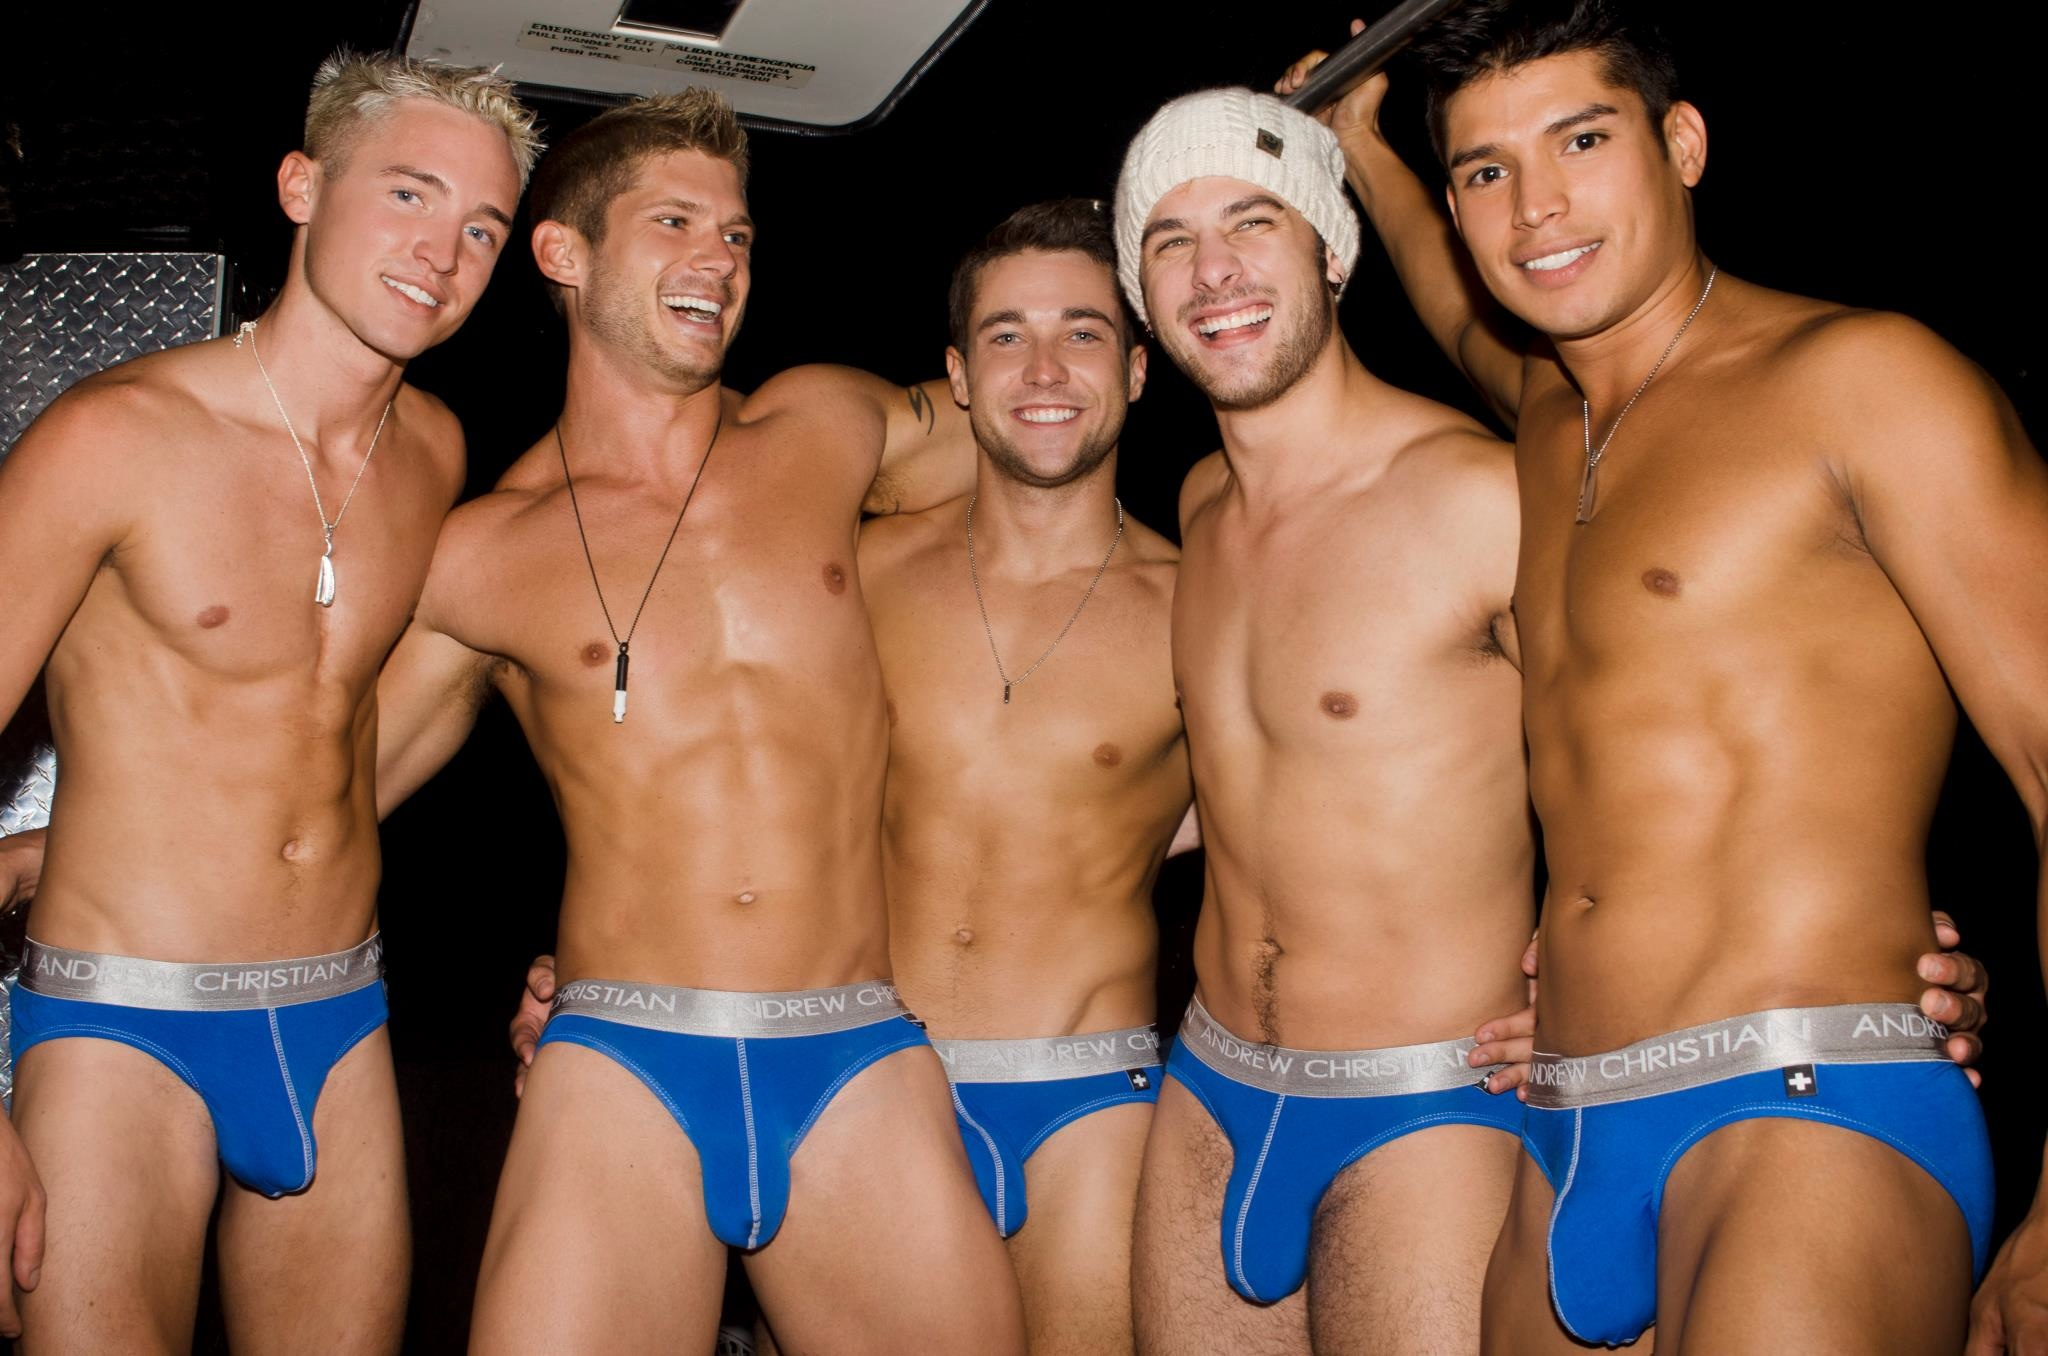 Hotties of The Day : Andrew Christian Models